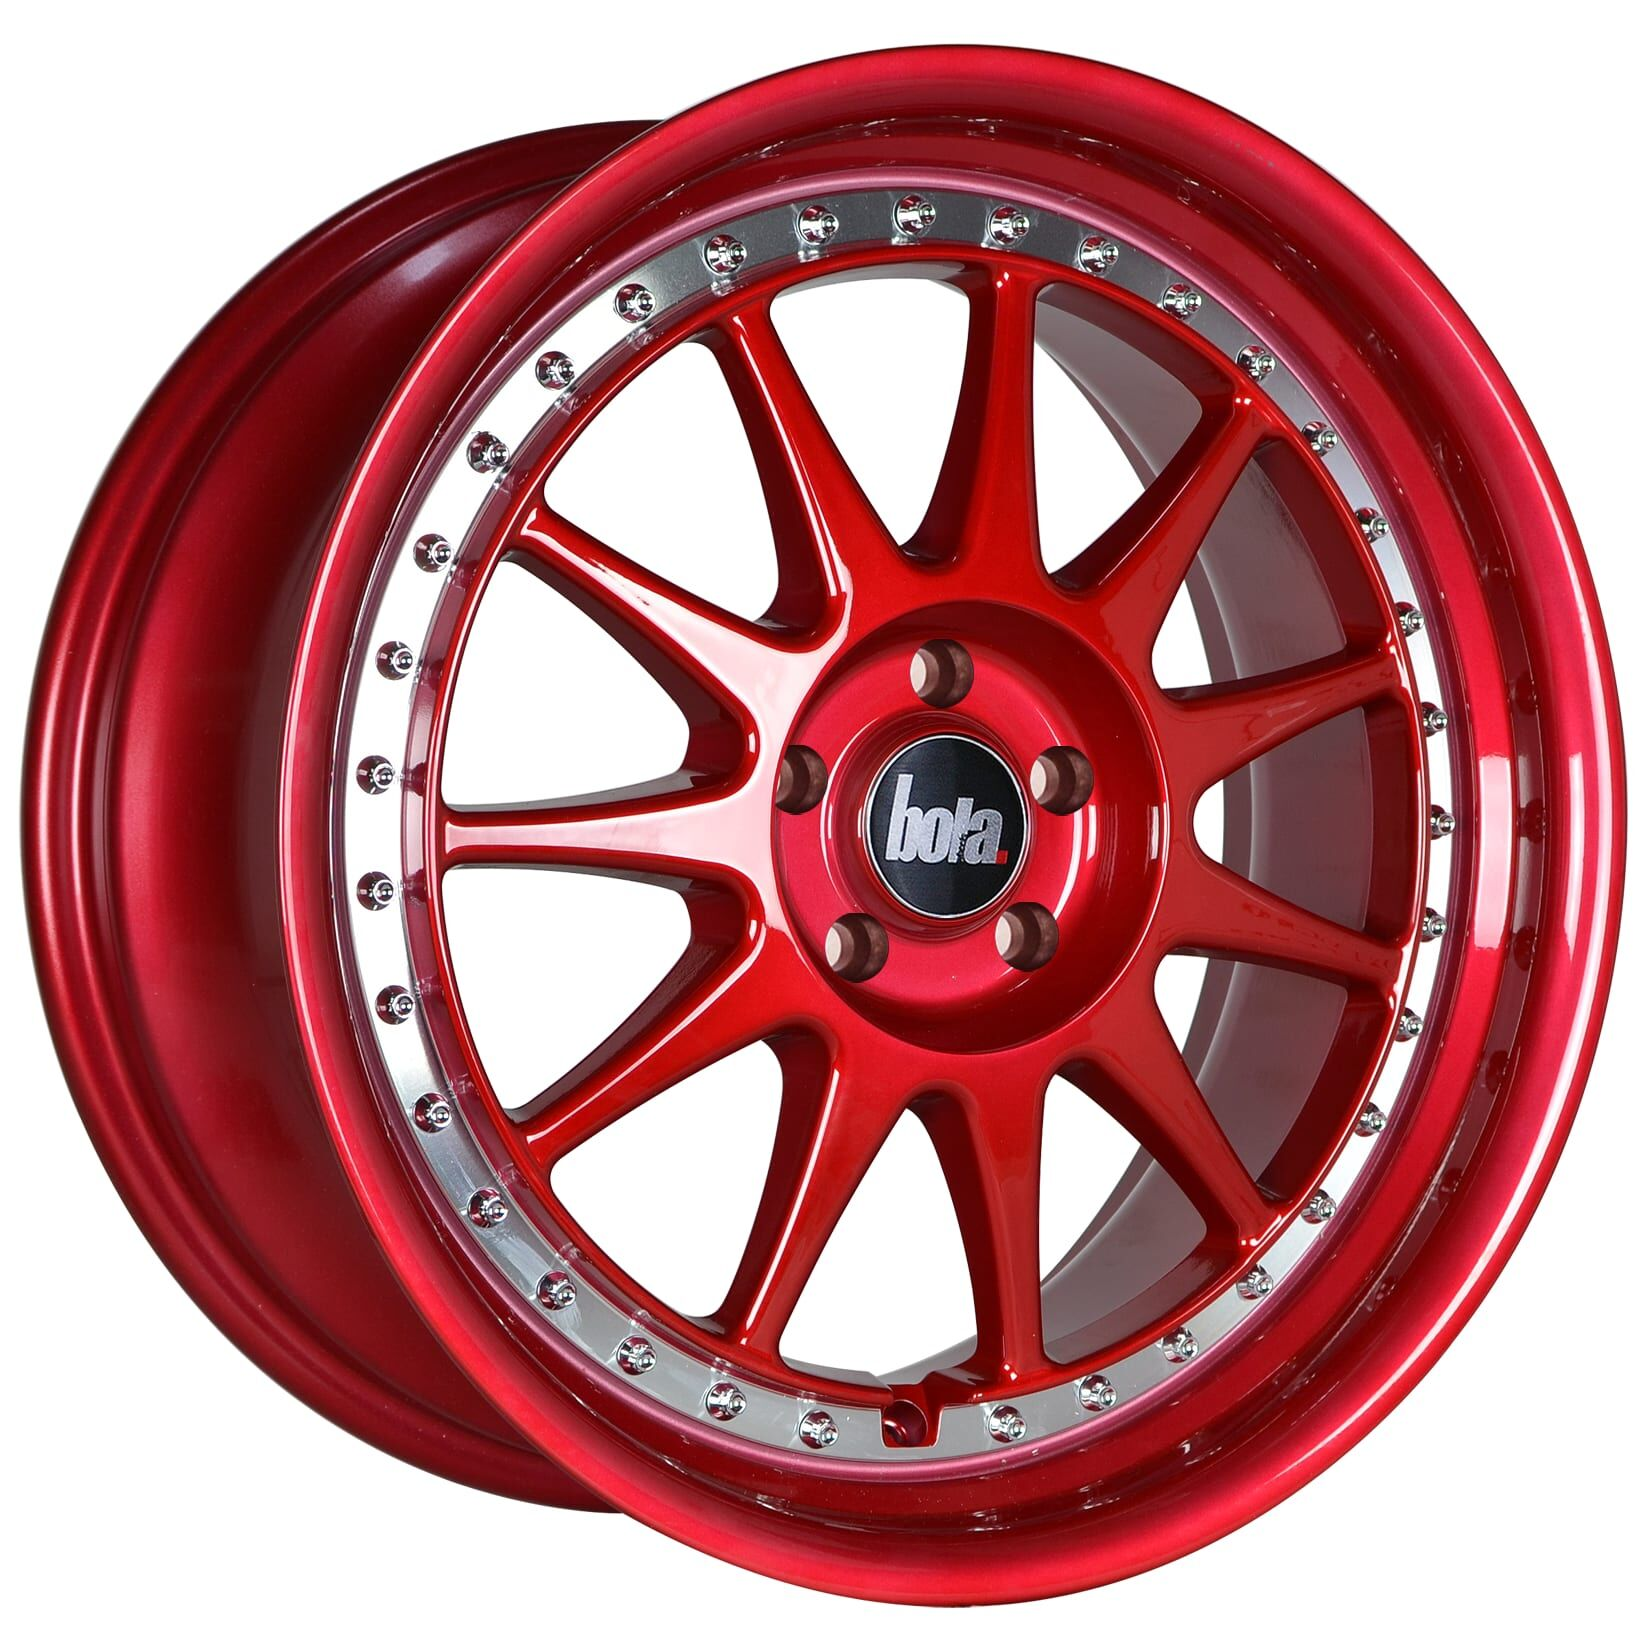 18 Bola B4 Wheels Candy Red With Silver Rivets All Bmw Models Cmwheels